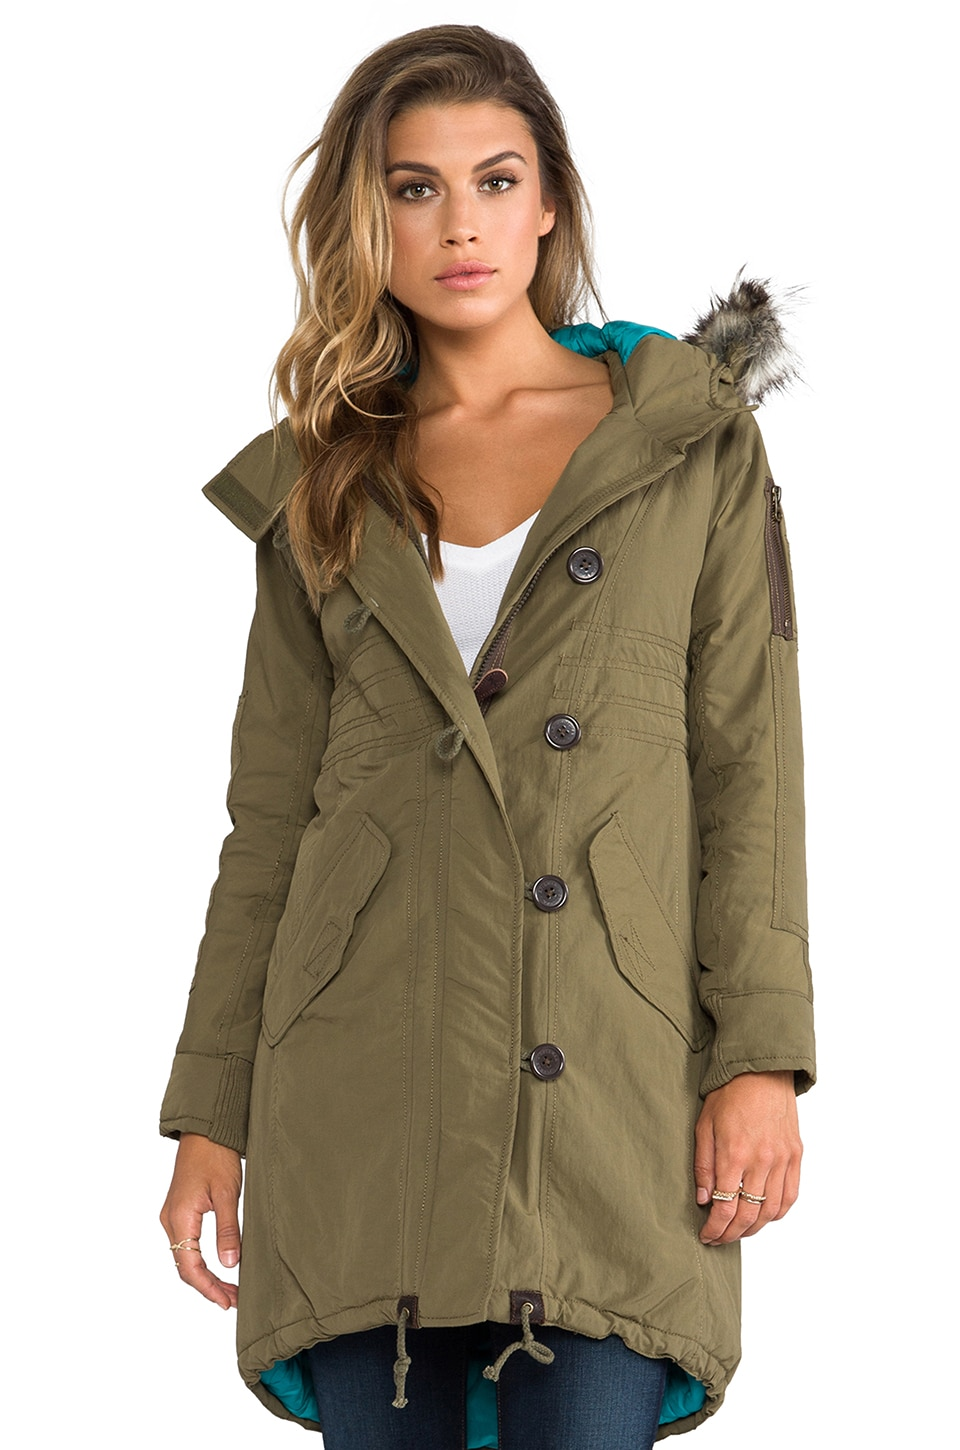 Spiewak Norwich Parka with Faux Fur Trim in Surplus Olive/Lake Blue